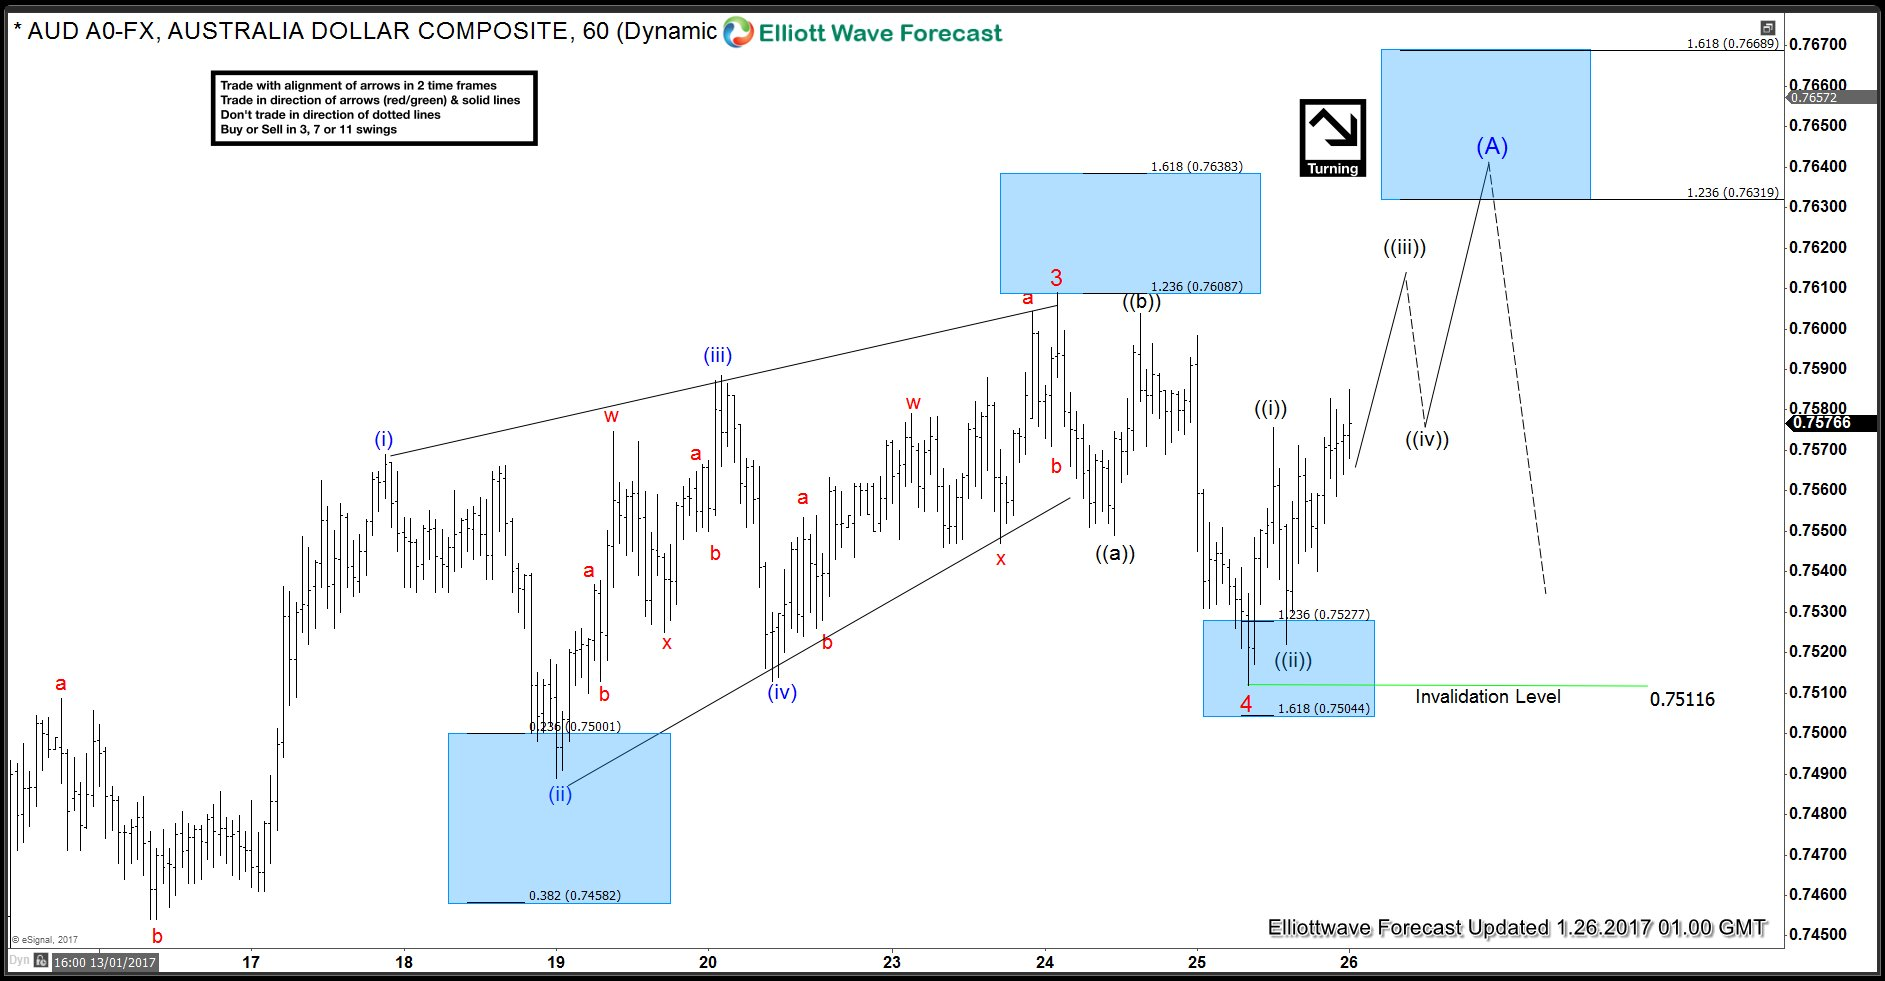 AUDUSD Elliott Wave Analysis showing 5 wave move